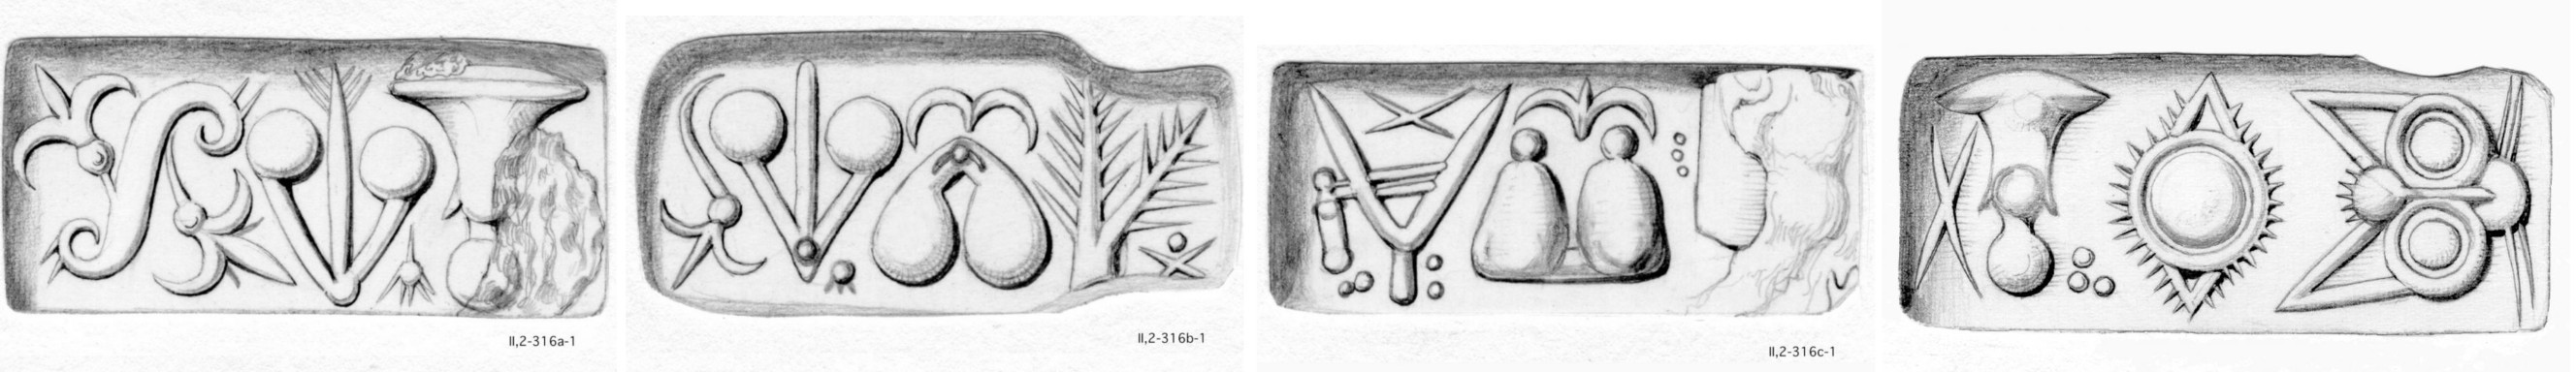 Fig. 5: The four sides of CMS                            II,2 316 with Cretan hieroglyphs: CHIC 044, 049 | CHIC X, 029, 077, 049 |                            CHIC X, 057, 034, 056? | CHIC X, 044, 005. [Graphic by courtesy of the CMS Heidelberg.]